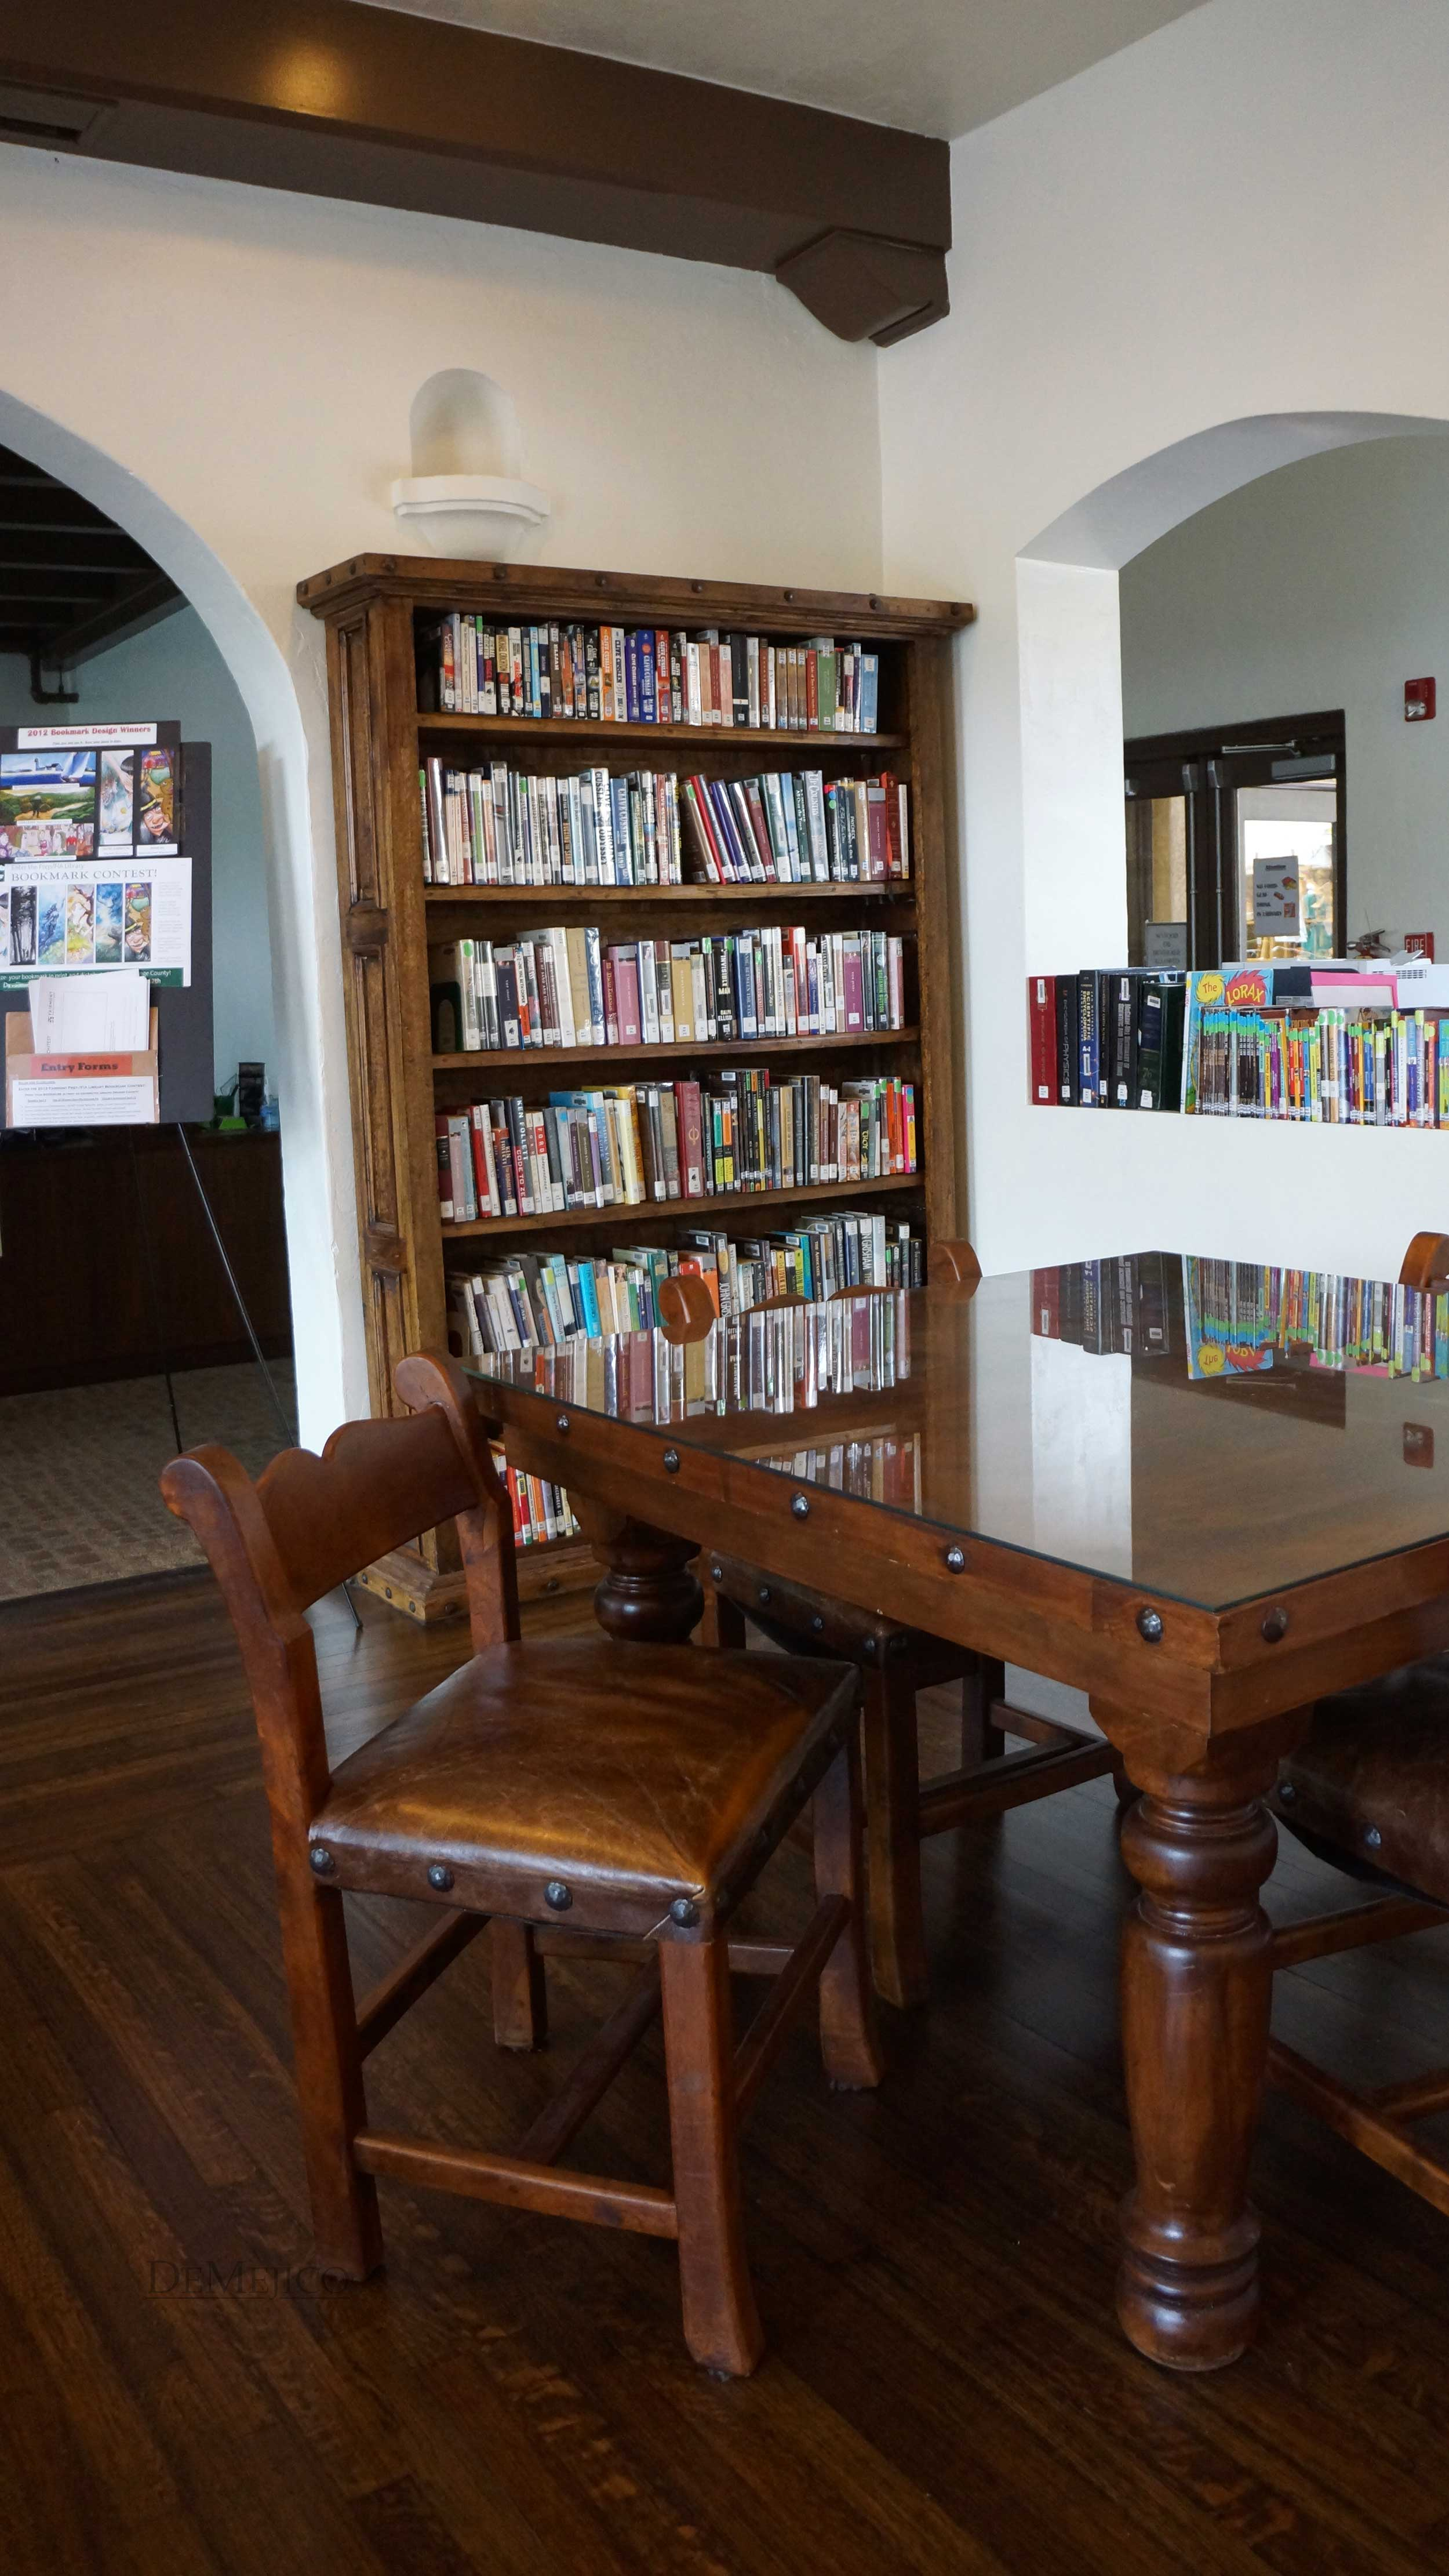 rustic library furniture spanish library furniture rustic colonial furniture rustic bookcases